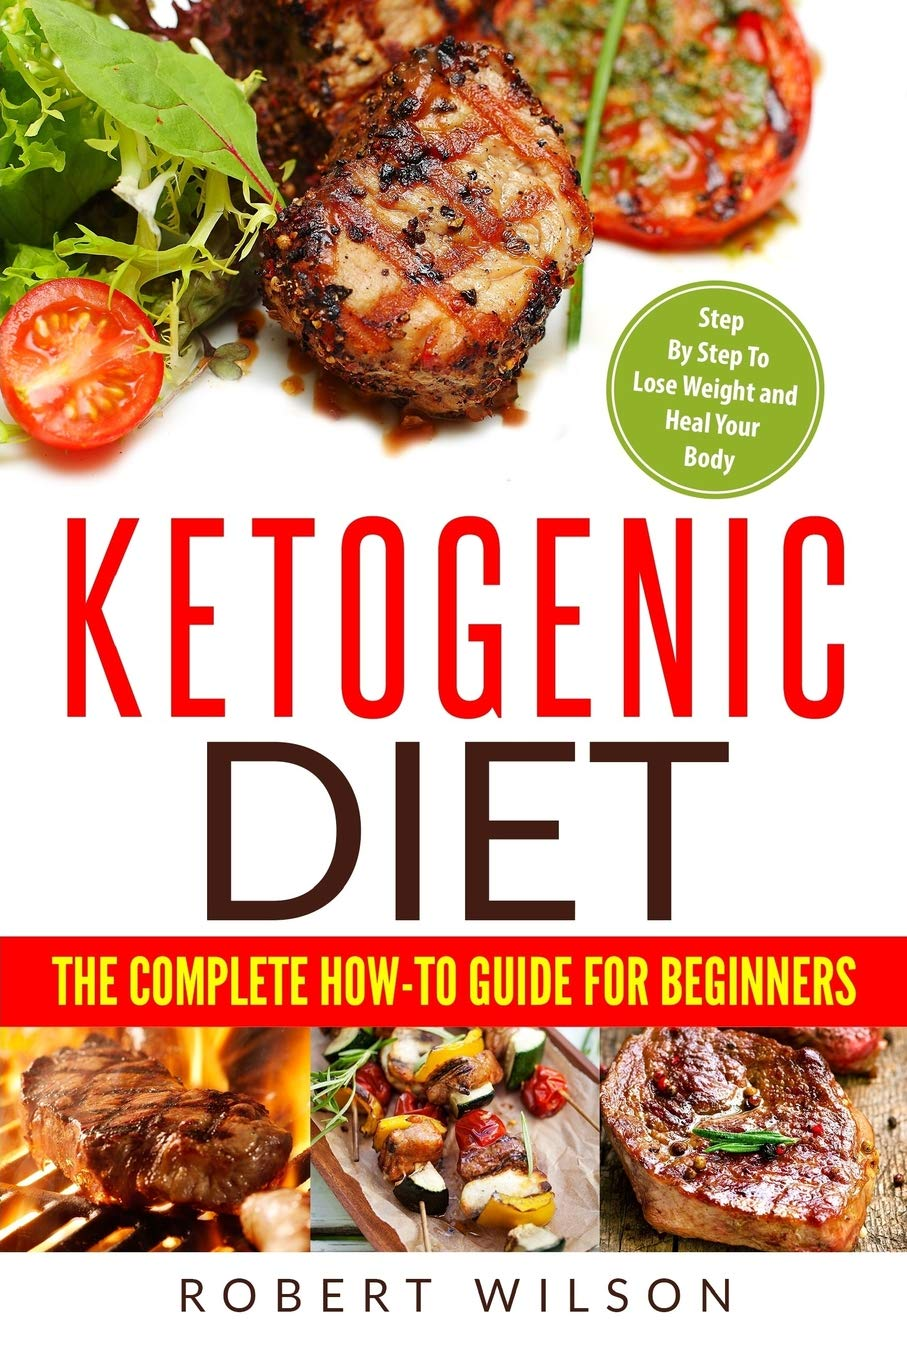 Ketogenic Diet: The Complete How-To Guide For Beginners: Ketogenic Diet For Beginners: Step By Step To Lose Weight And Heal Your Body (Volume 1) pdf